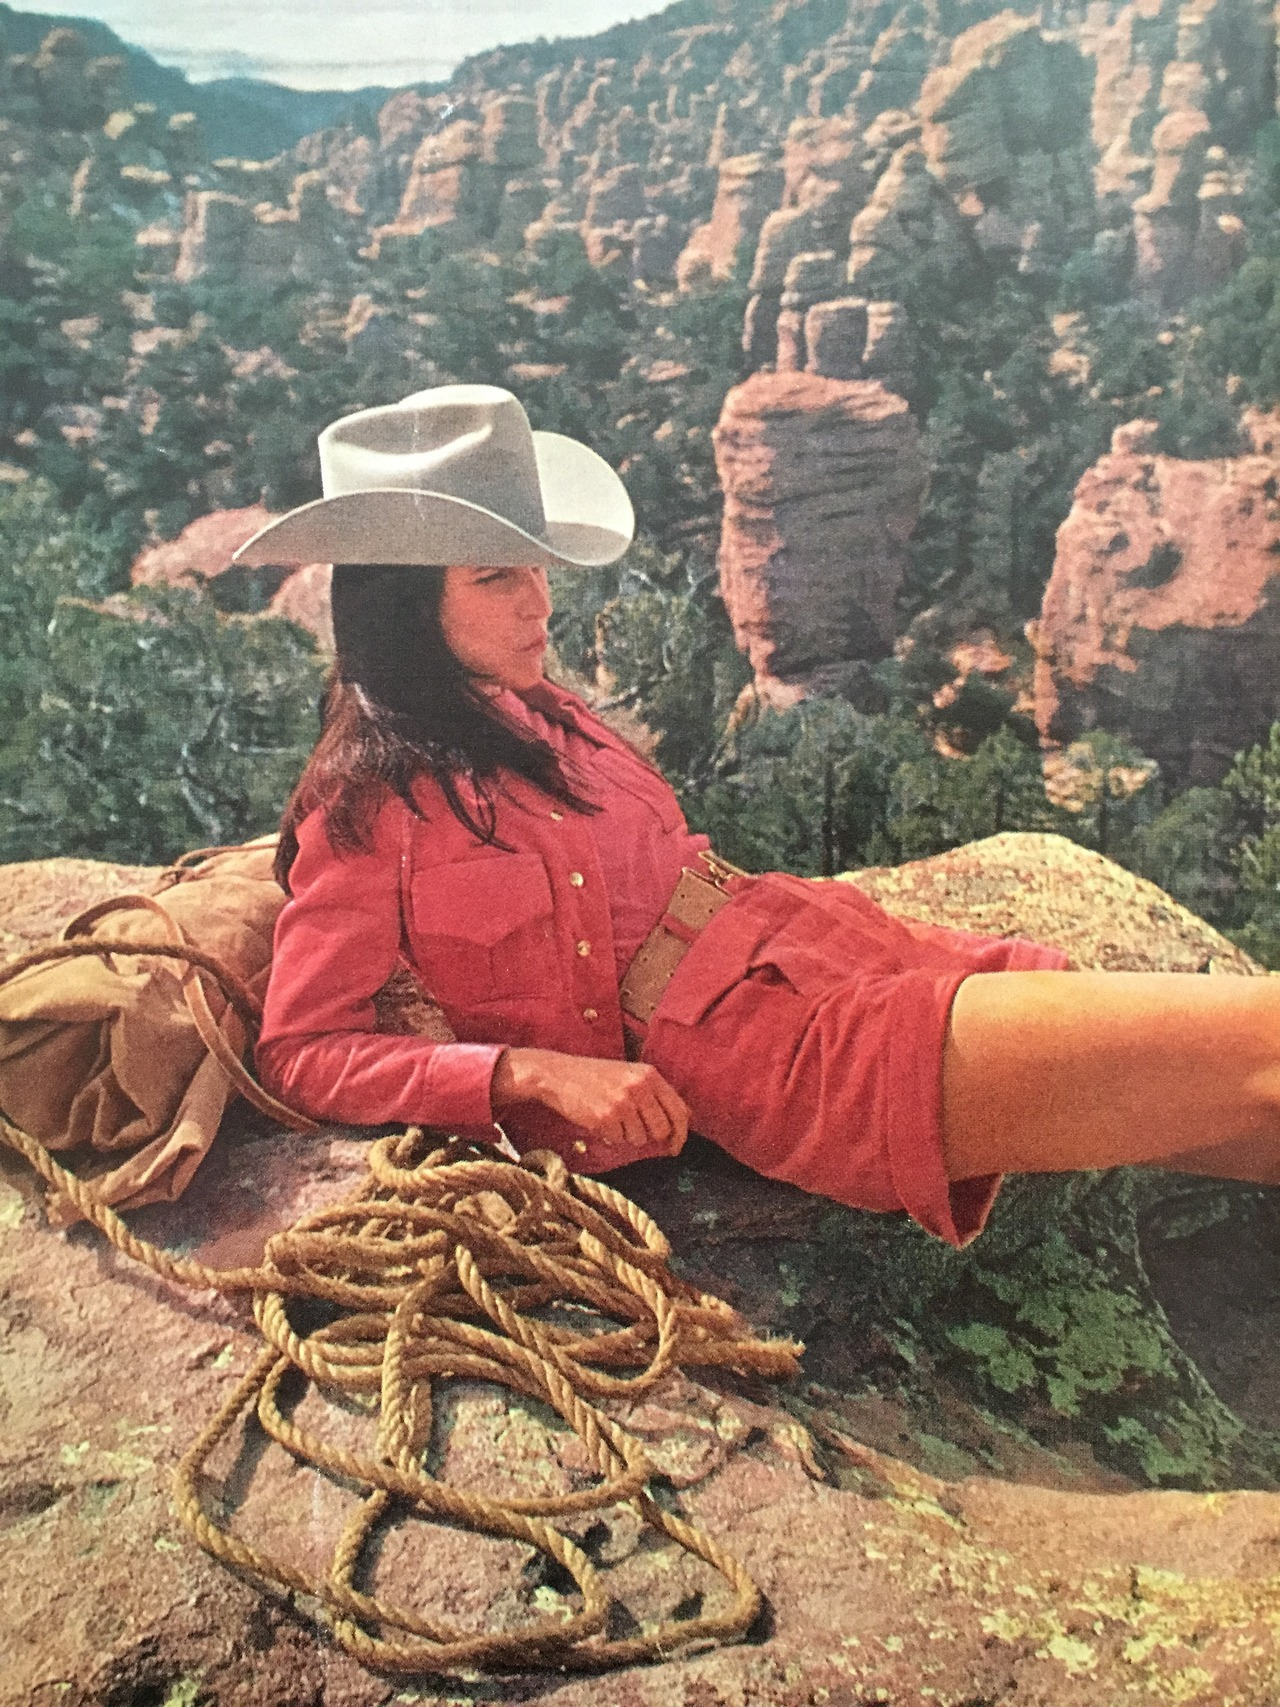 """The pass proved steep and tortuous; but Gilda, plucky in her cotton-velour cuffed shorts and Western-style jacket with a color-mated knit shirt (by Mary Anne Restivo for Something Special), pushed on. At the summit, she sank exhausted to the ground to survey the awesome Southwestern scene and search the horizon for her next landmark.""     McCall's.  June 1969."